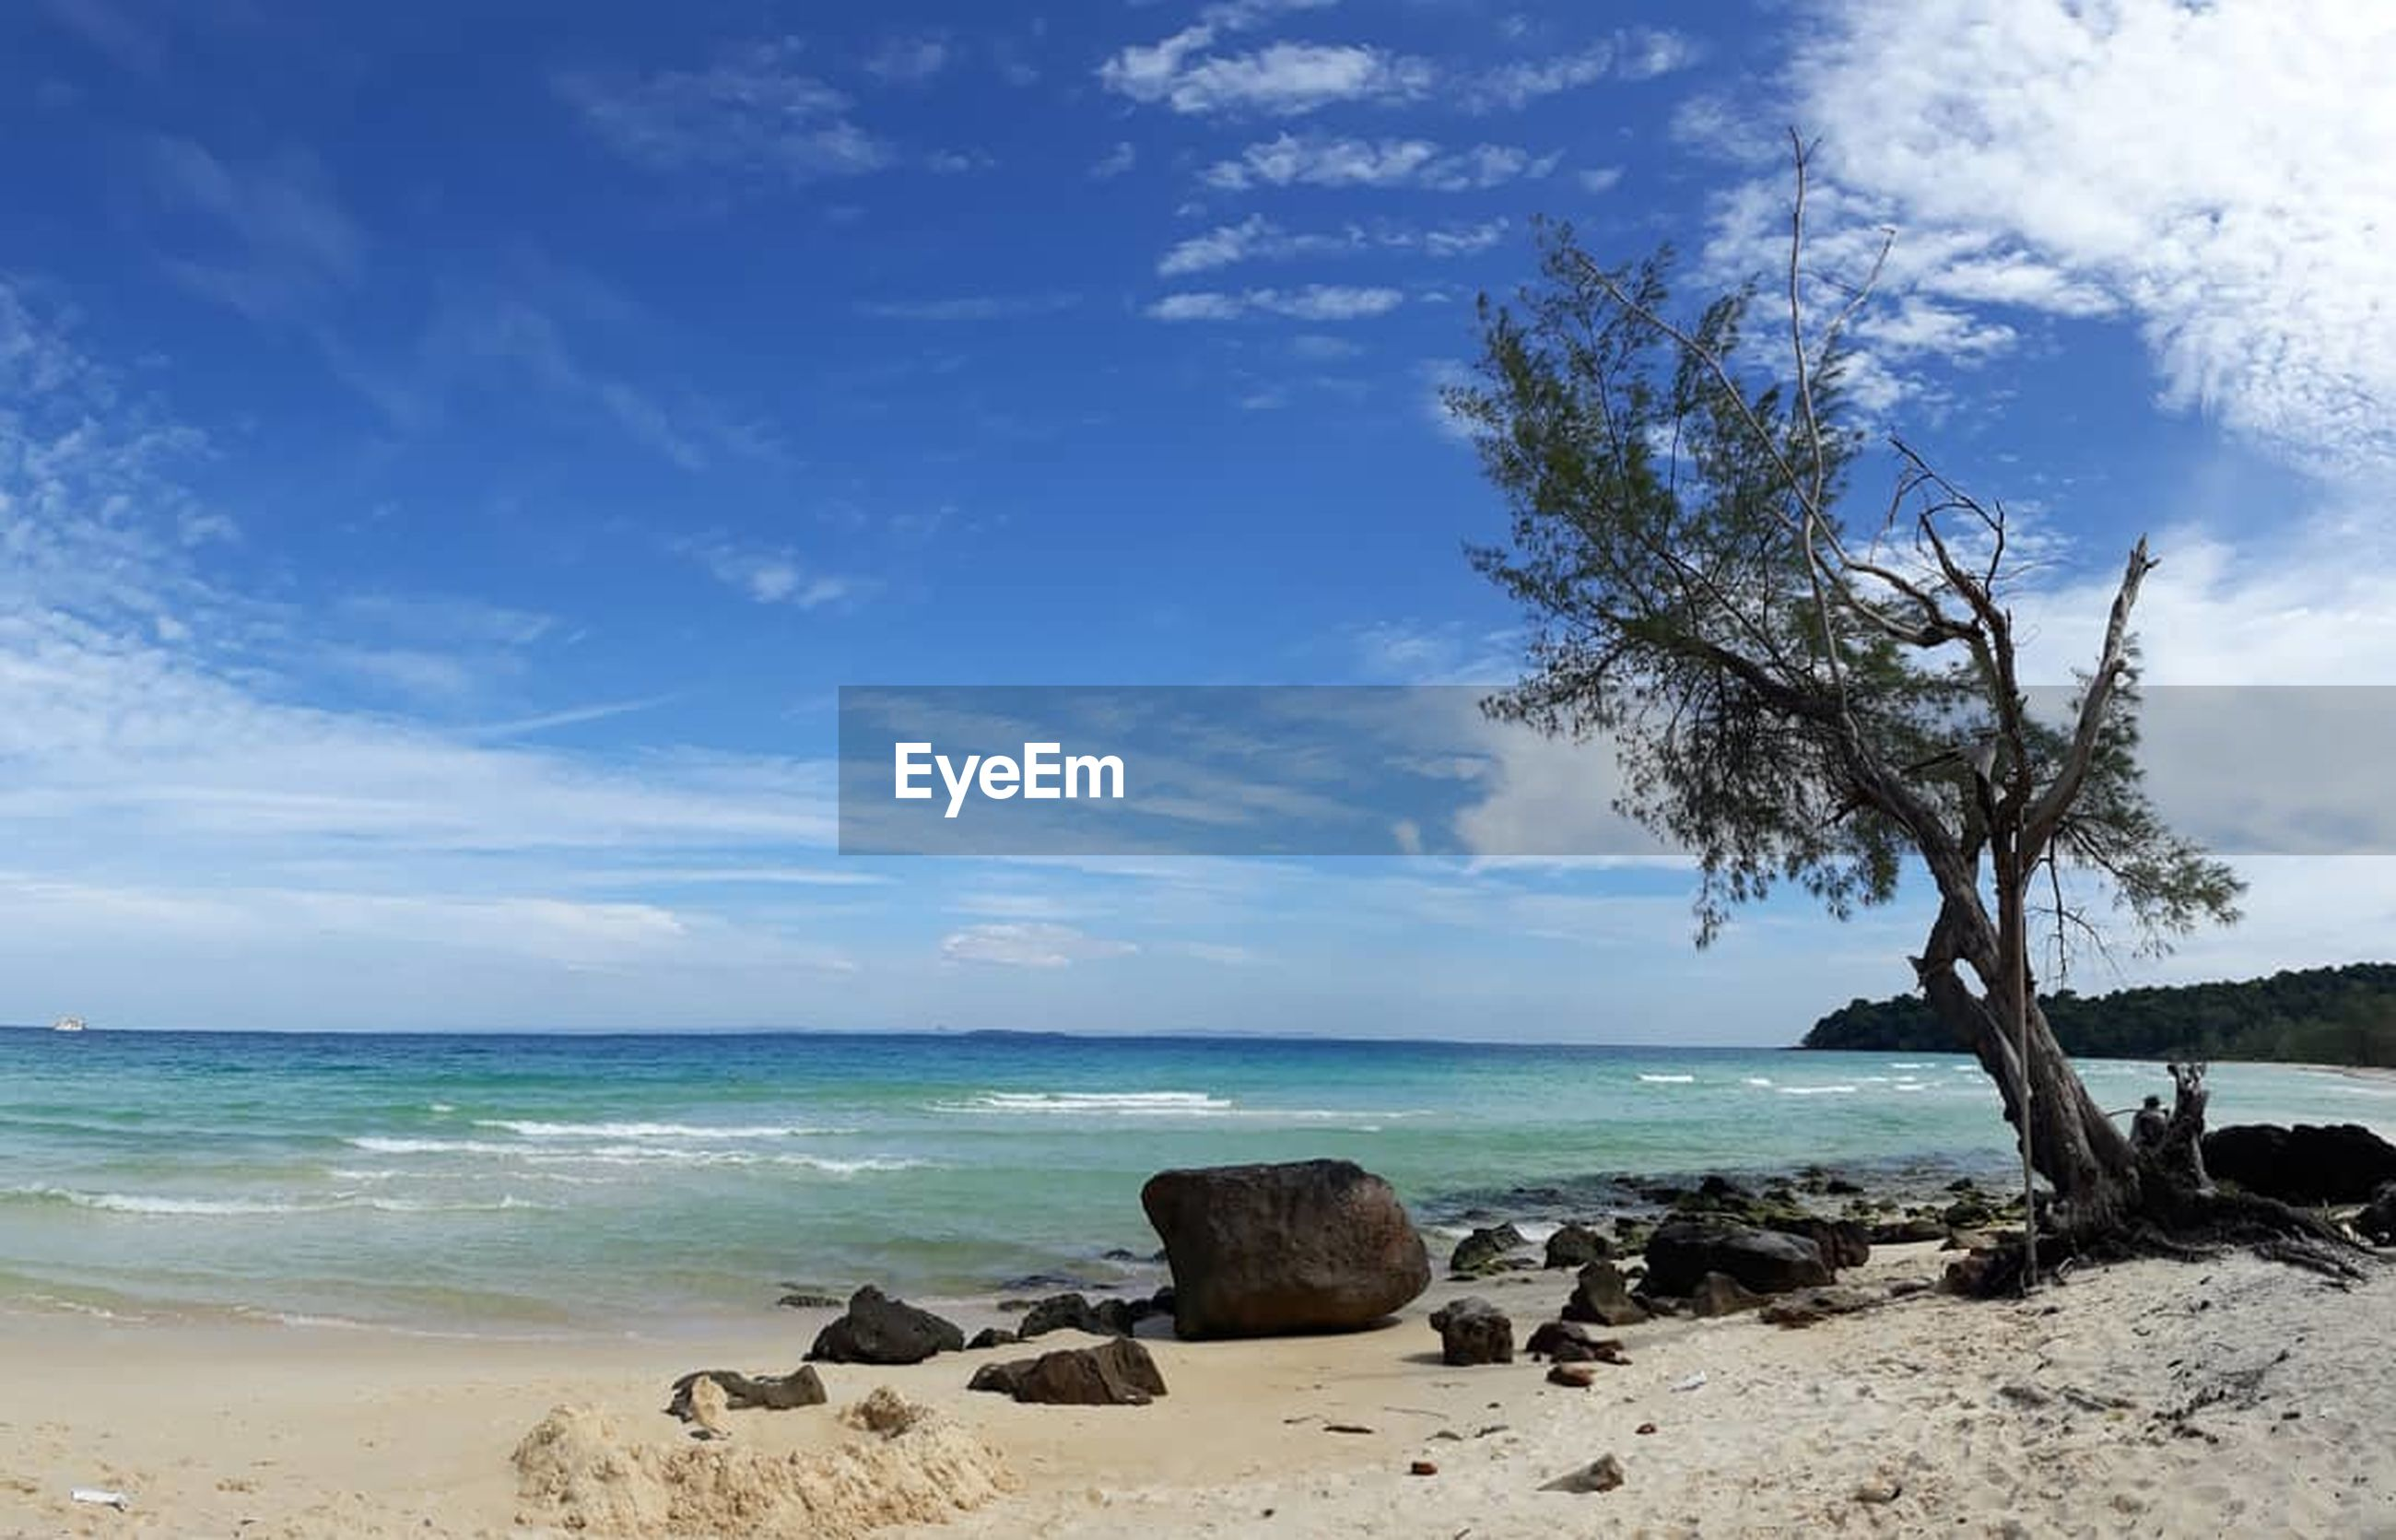 sea, sky, horizon over water, beauty in nature, nature, scenics, water, blue, tranquility, rock - object, cloud - sky, day, outdoors, tranquil scene, beach, no people, tree